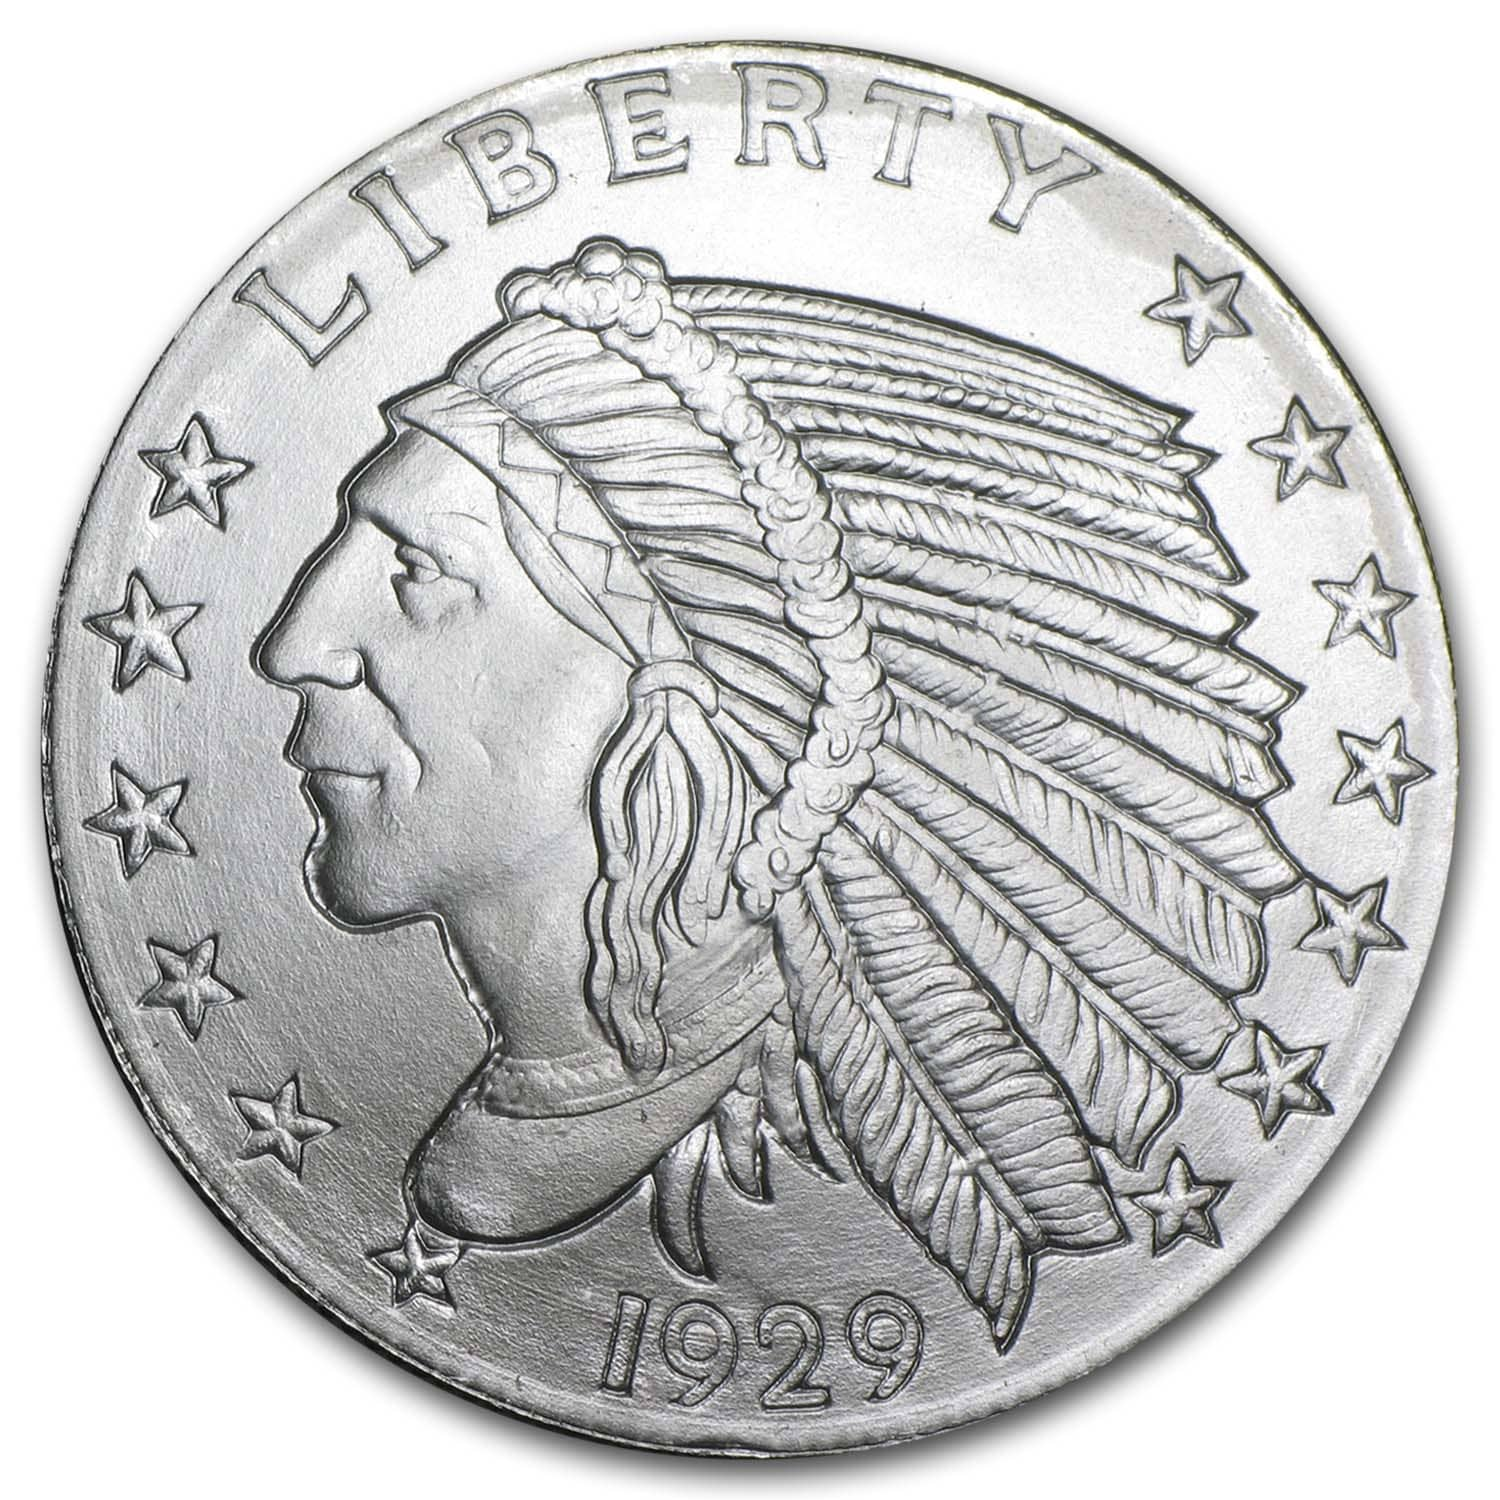 1/2 oz Silver Round - Incuse Indian